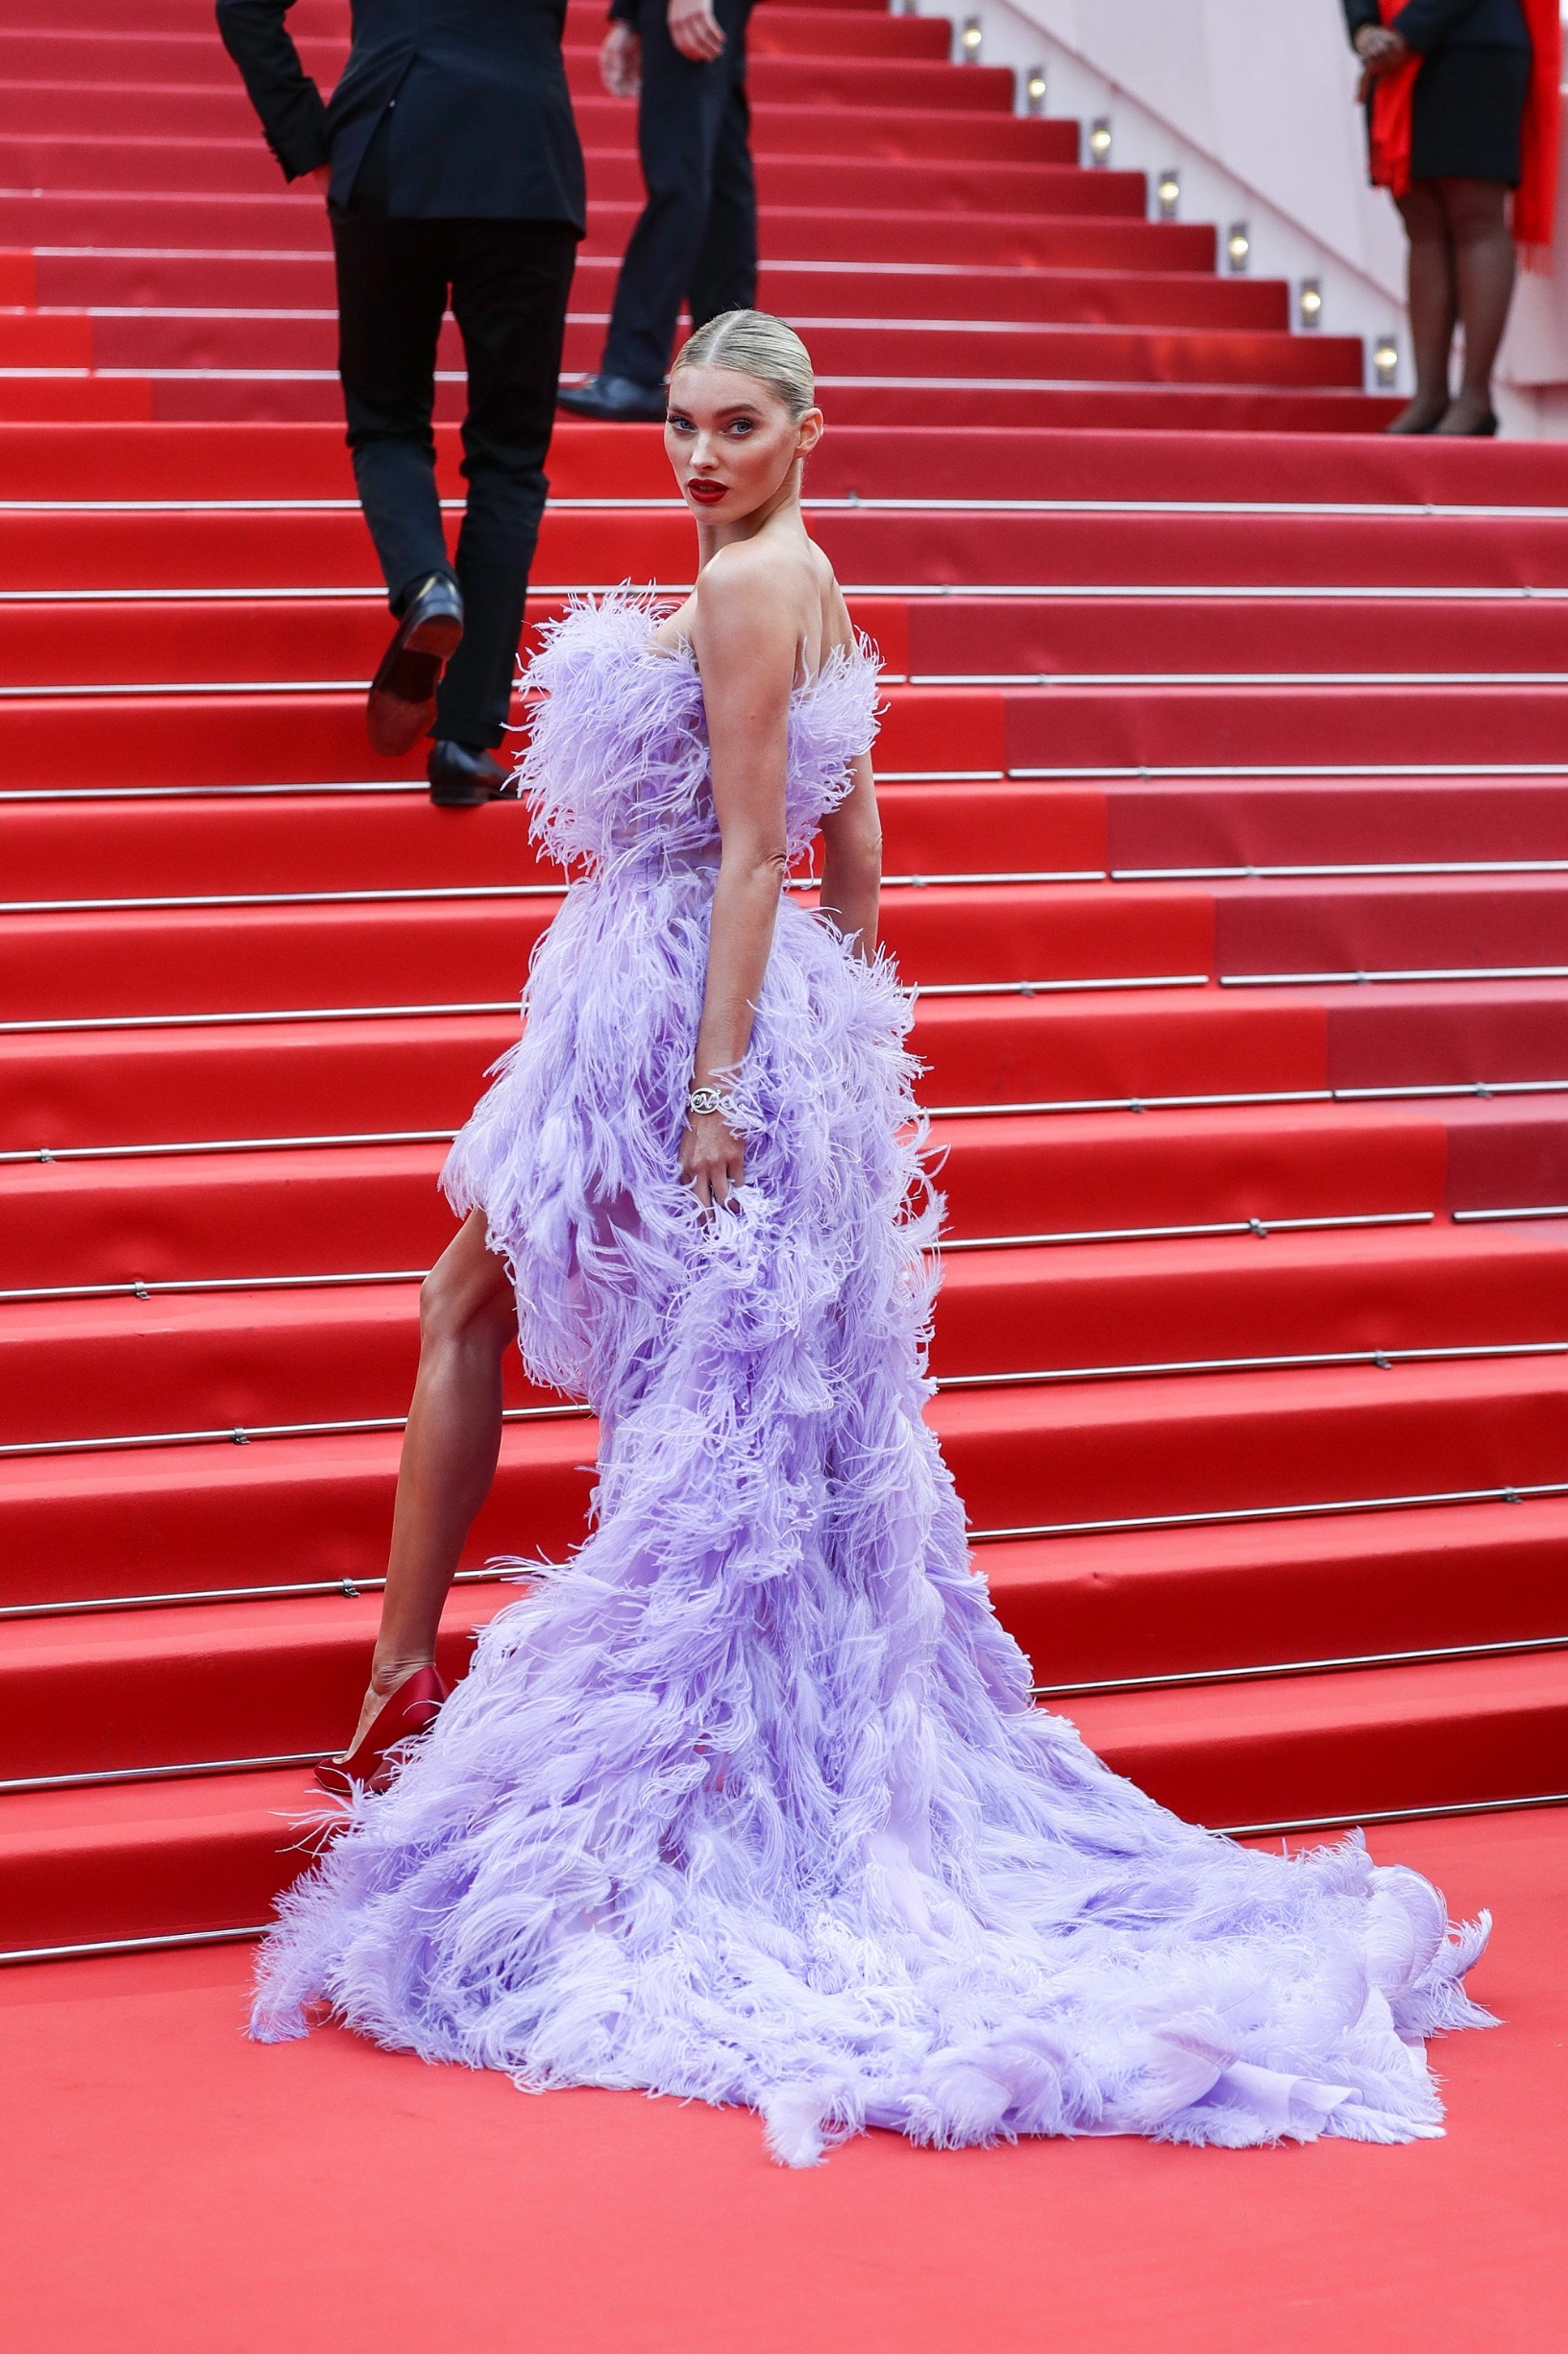 CANNES, FRANCE - MAY 24: Elsa Hosk attends the screening of